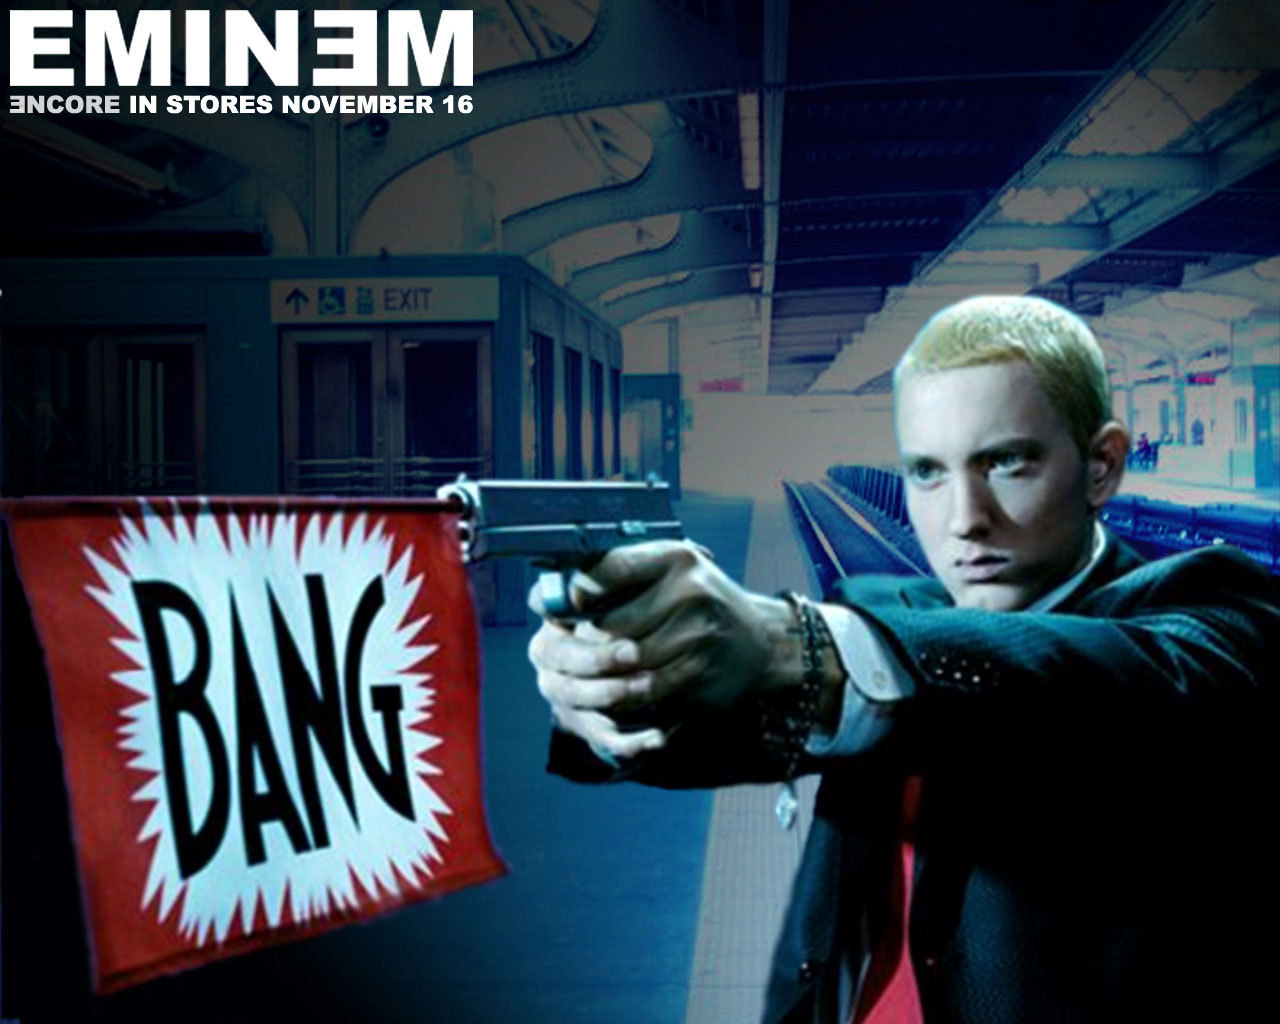 http://4.bp.blogspot.com/-WFXYUORS70s/T5jnUFnkSWI/AAAAAAAABXA/5AcDu6mb8YY/s1600/The-best-top-desktop-eminem-wallpapers-20.jpg